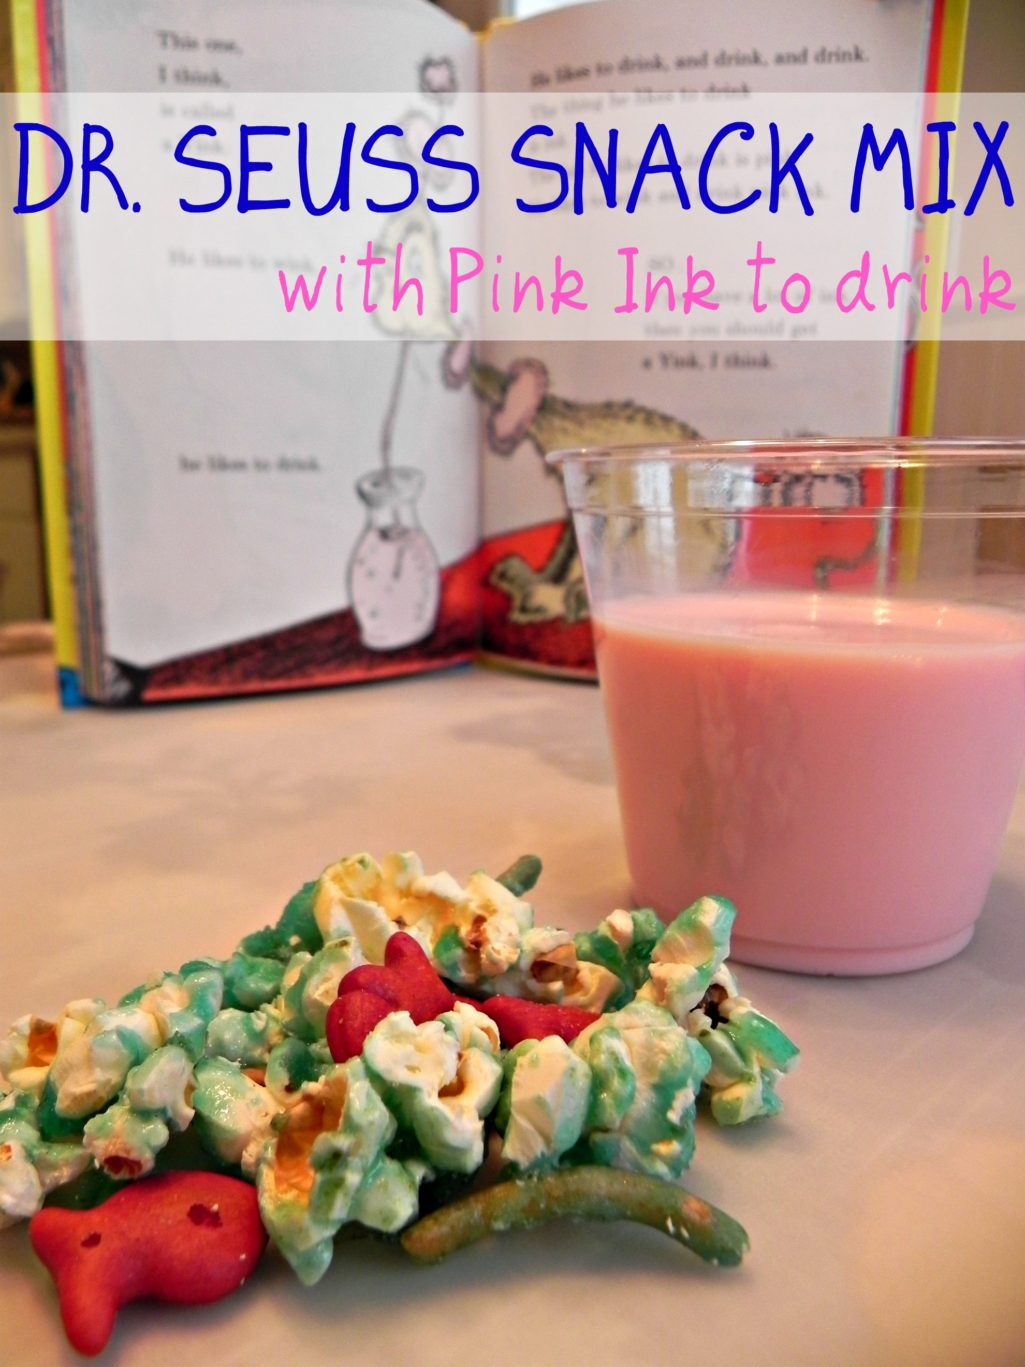 Dr. Seuss Snack Mix and Pink Ink